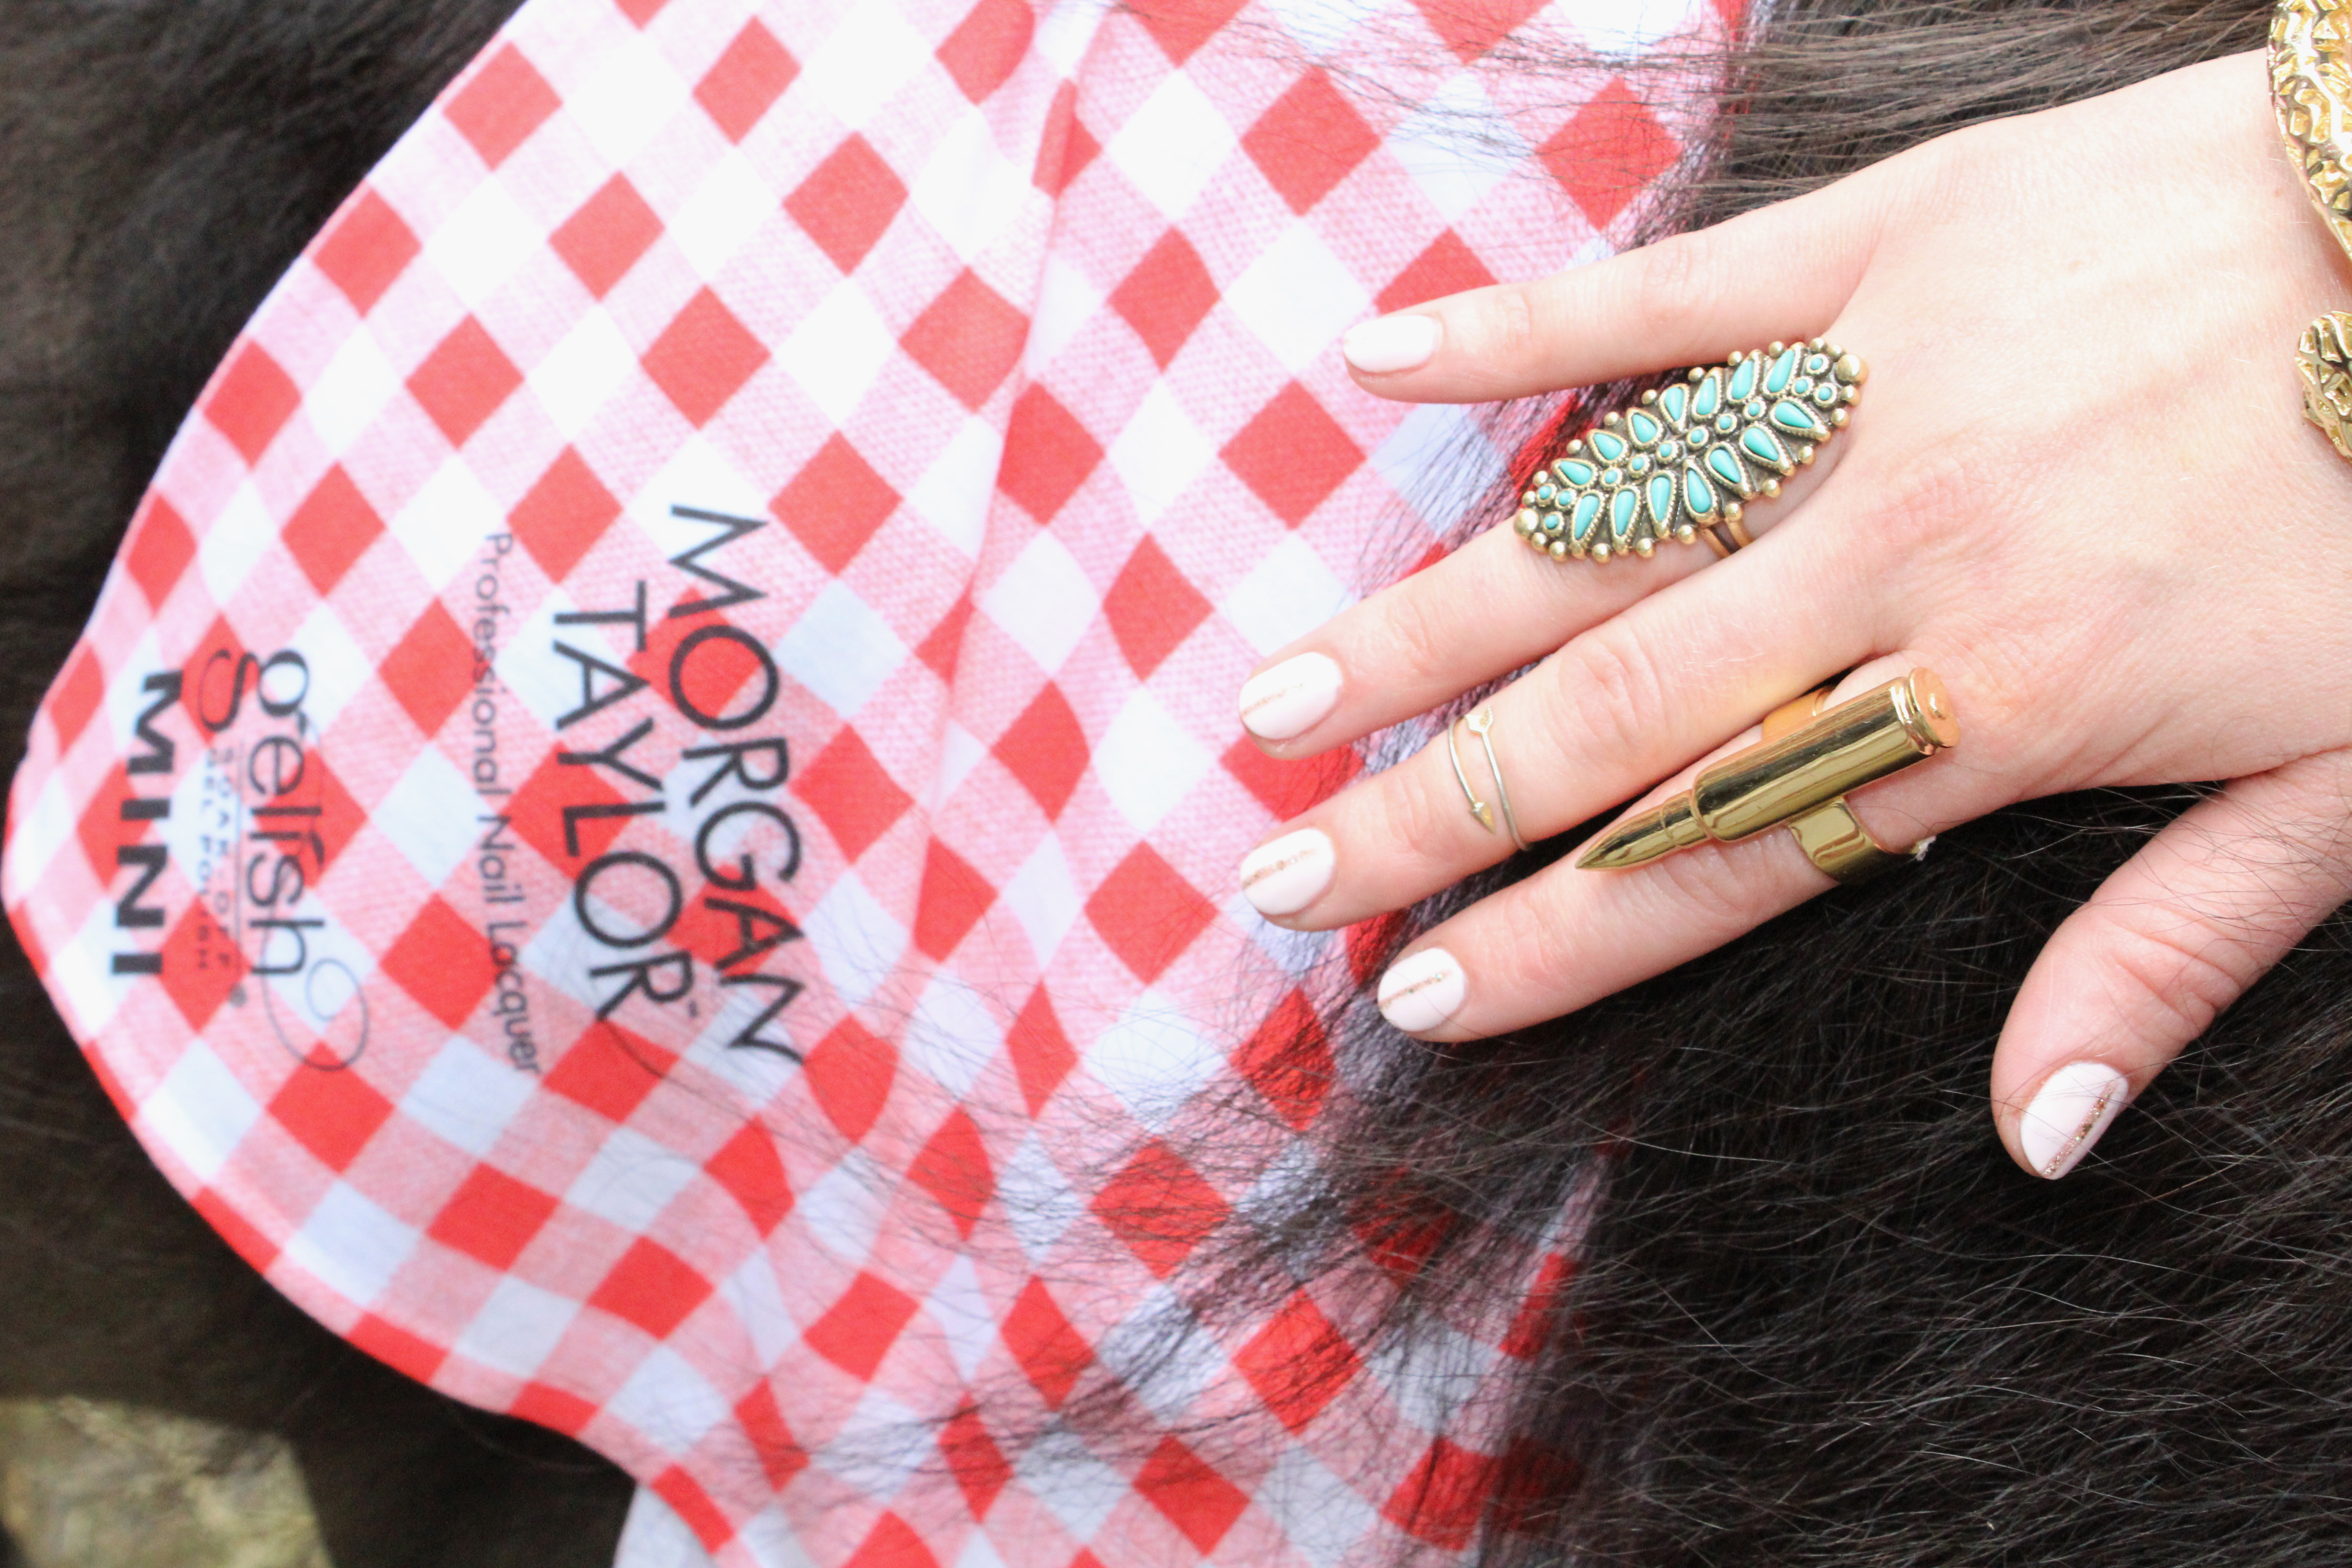 Morgan Taylor & Gelish MINI Launch 'Urban Cowgirl' Collection in NYC